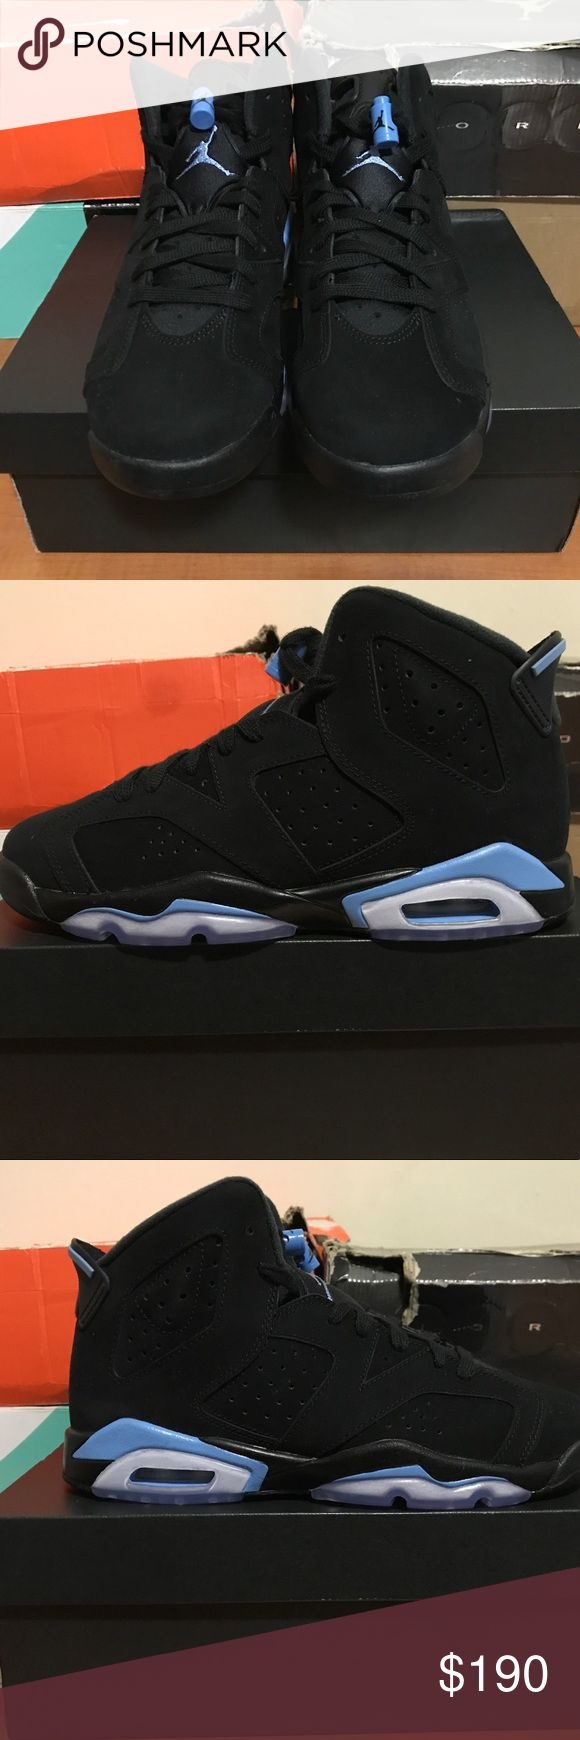 Air Jordan 6 UNC Kids Size 7 *Message Me For First Buyer's Discount  Shoes are brand new and comes with original box, laces and Jordan Brand sticker.  MOSSIMO SUPPLY CO., VANS, ADIDAS, NIKE, VINTAGE VINEYARDS, STARTER, CONVERSE, AIR JORDAN, J. CREW, TOMMY HILFIGER, THE NORTH FACE, DITCH PLAINS, CHAMPION, LACOSTE, BLAC LABEL, RALPH LAUREN, REEBOK, OLD NAVY, AMERICAN APPAREL, NAUTICA, ABERCROMBIE & FITCH, OBEY, FOREVER 21, SKULLCANDY, SUPREME, PACSUN, POLO, LEVI'S Jordan Shoes Sneakers